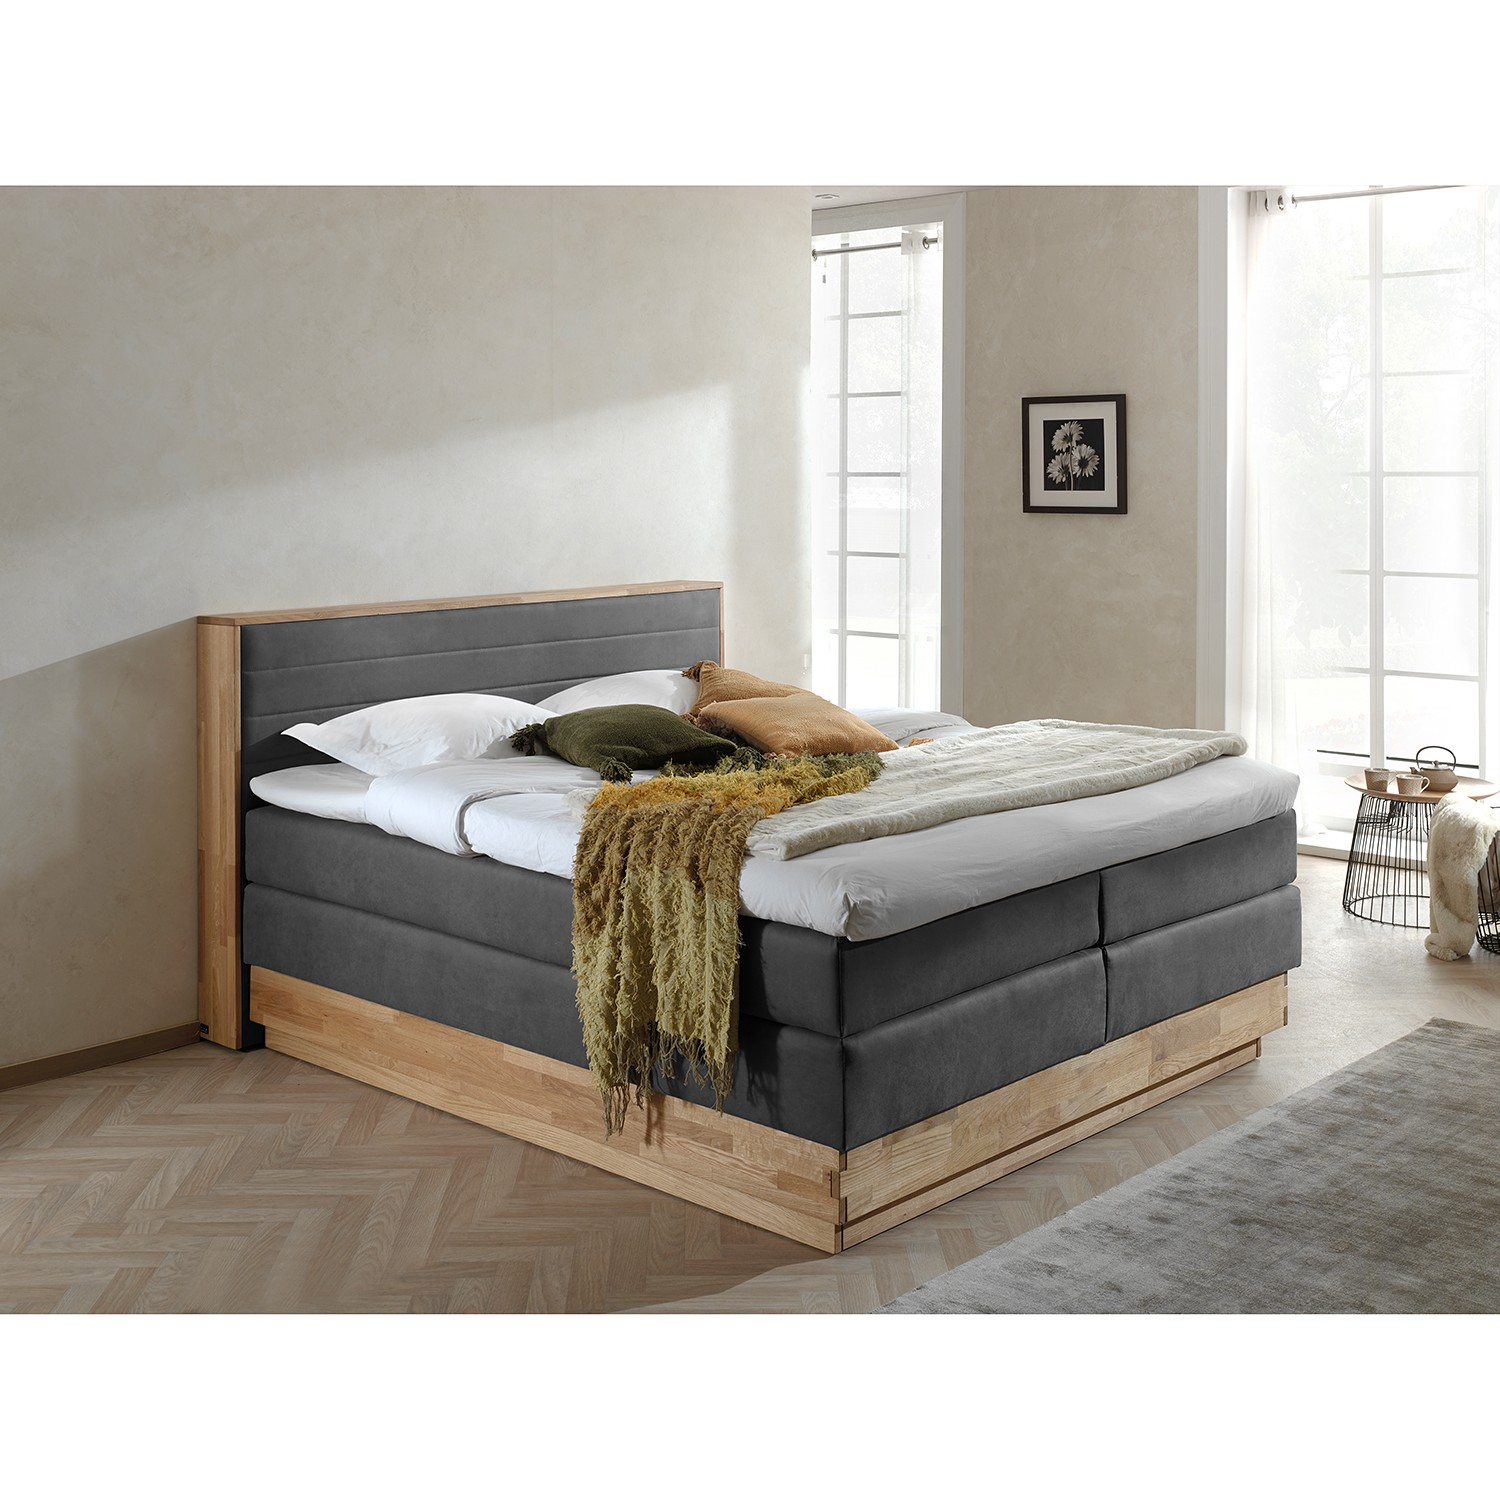 home24 Boxspringbett Moneta